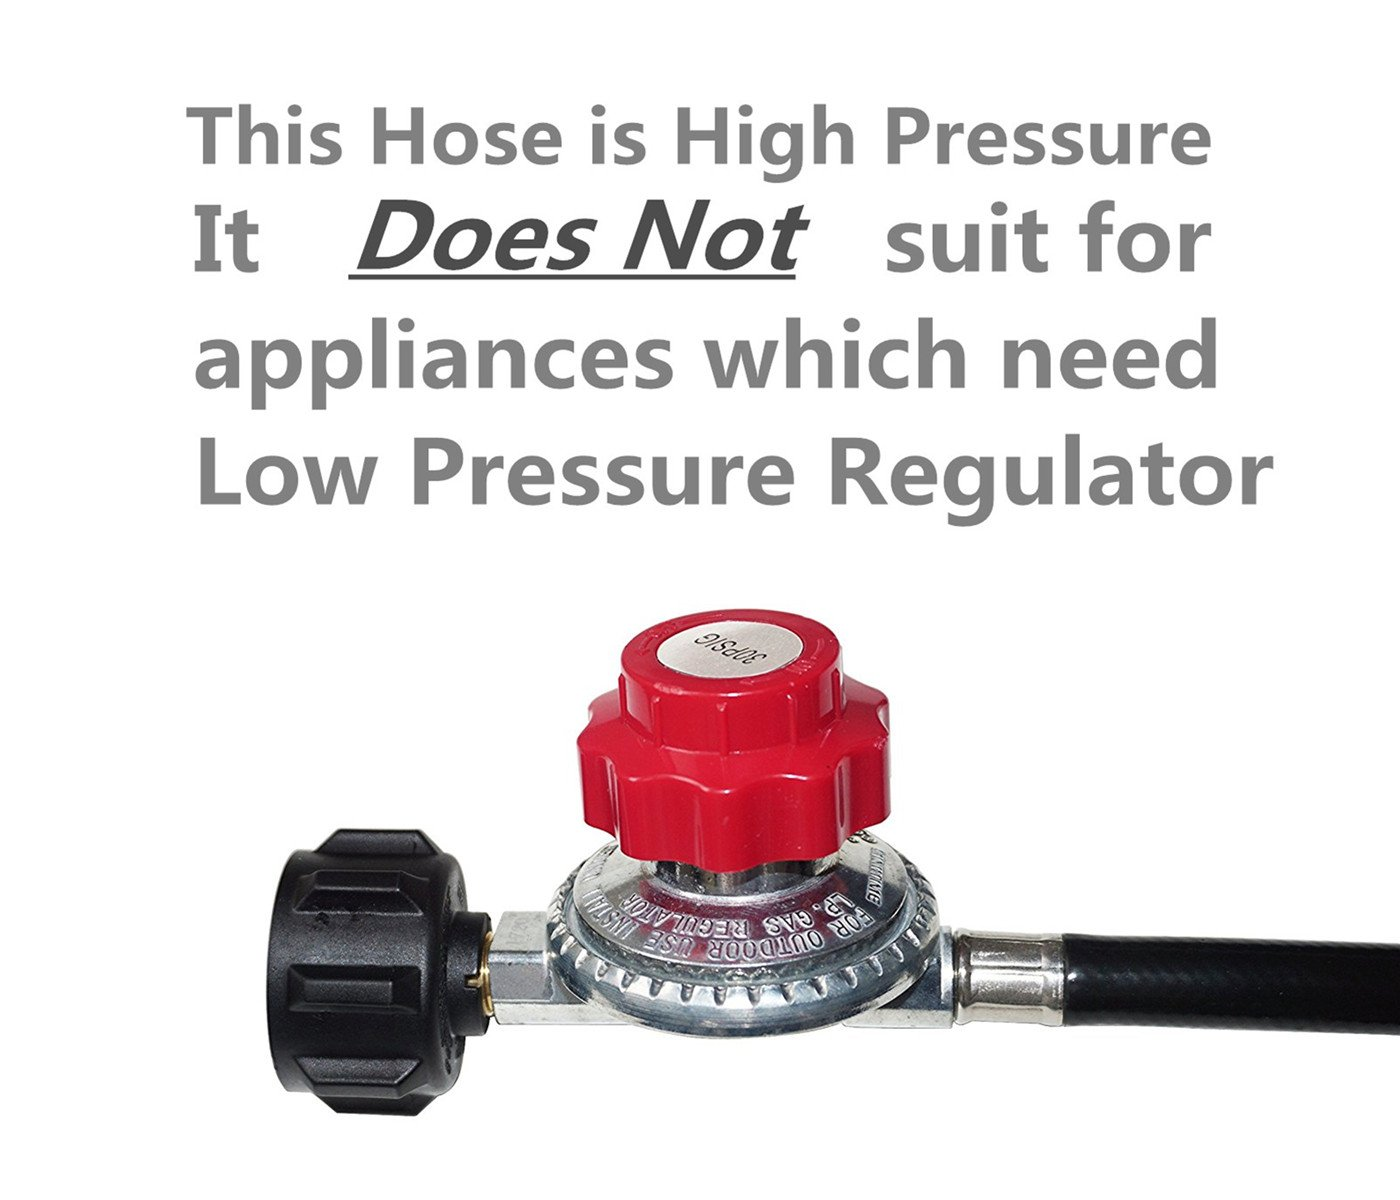 DOZYANT High Pressure Propane 0-30 PSI Adjustable Regulator with 4 Feet QCC1/Type1 Hose - Fits for Propane Burner Turkey Fryer Smoker and More Appliances - Safety Certified by DOZYANT (Image #3)